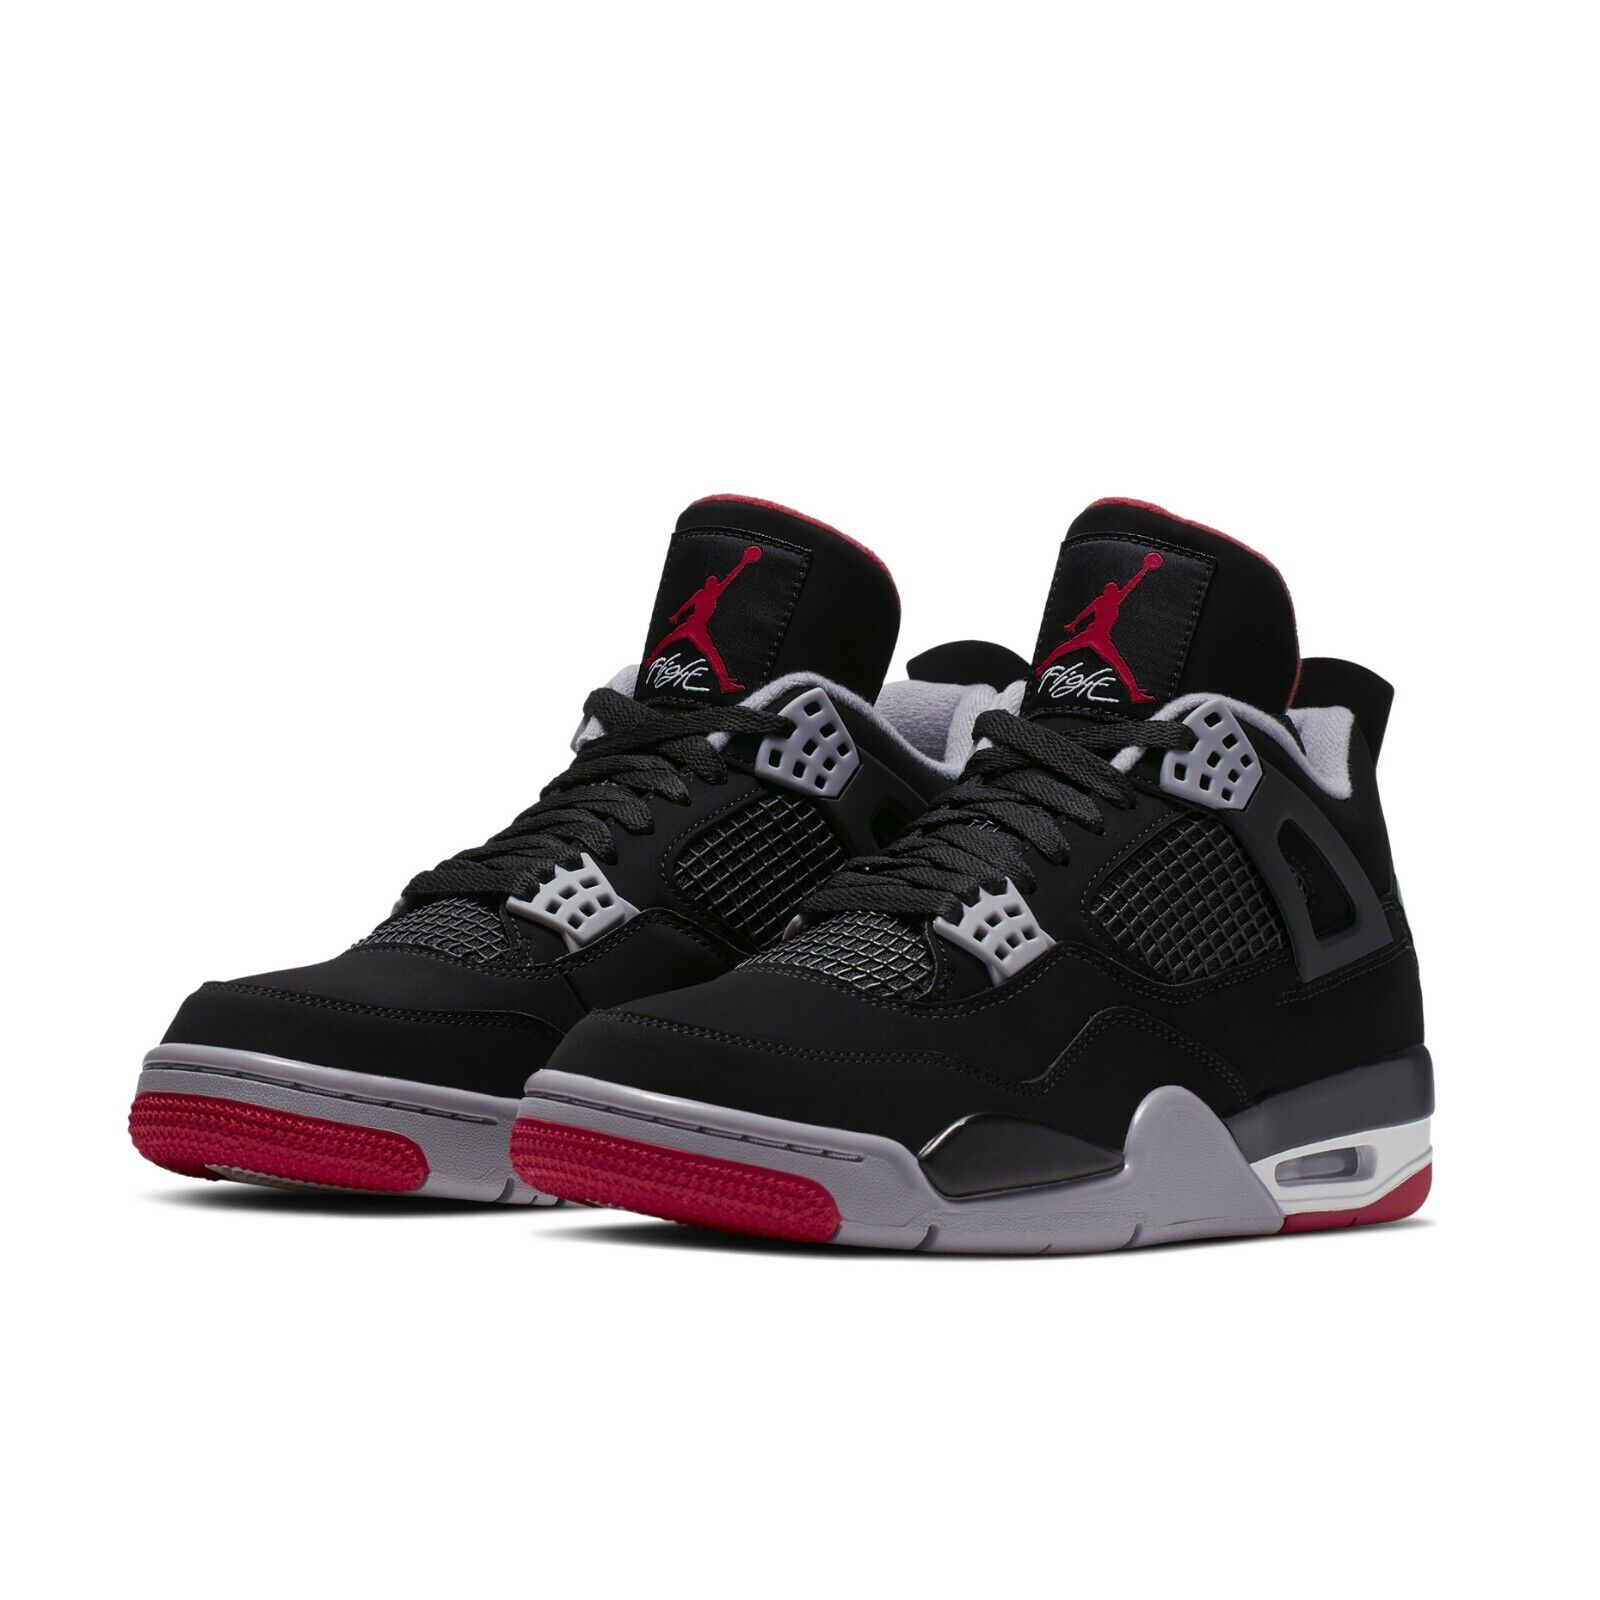 low cost 5c537 c8f6f  PRE-ORDER  Mens Air Jordan 4 IV Retro Black Red Bred OG 2019 AJ4 308497-060